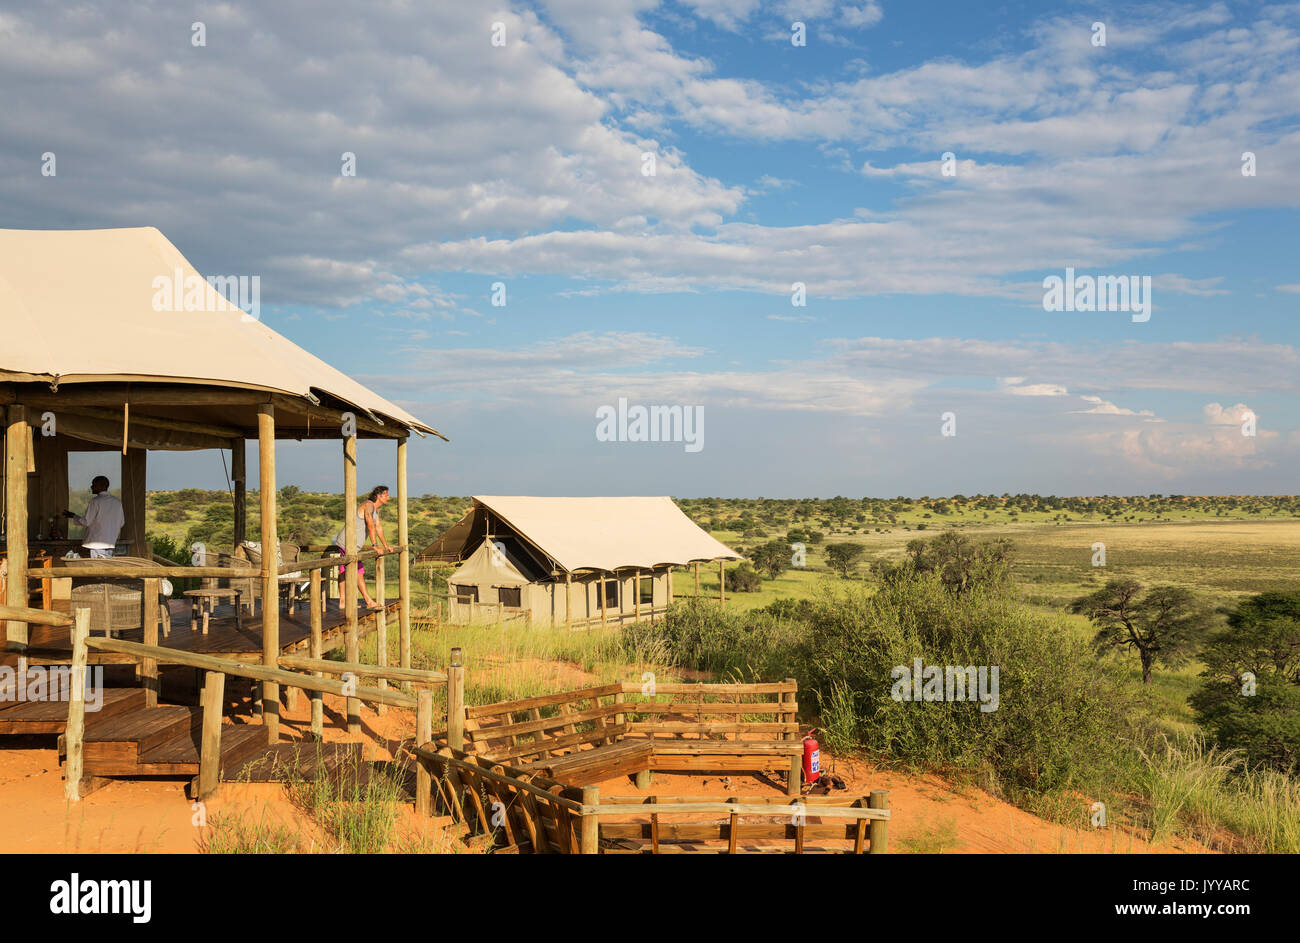 Lobby fireplace and stilted canvas tents Polentswa C& on the ridge of a sand dune during the rainy season with green & Lobby fireplace and stilted canvas tents Polentswa Camp on the ...